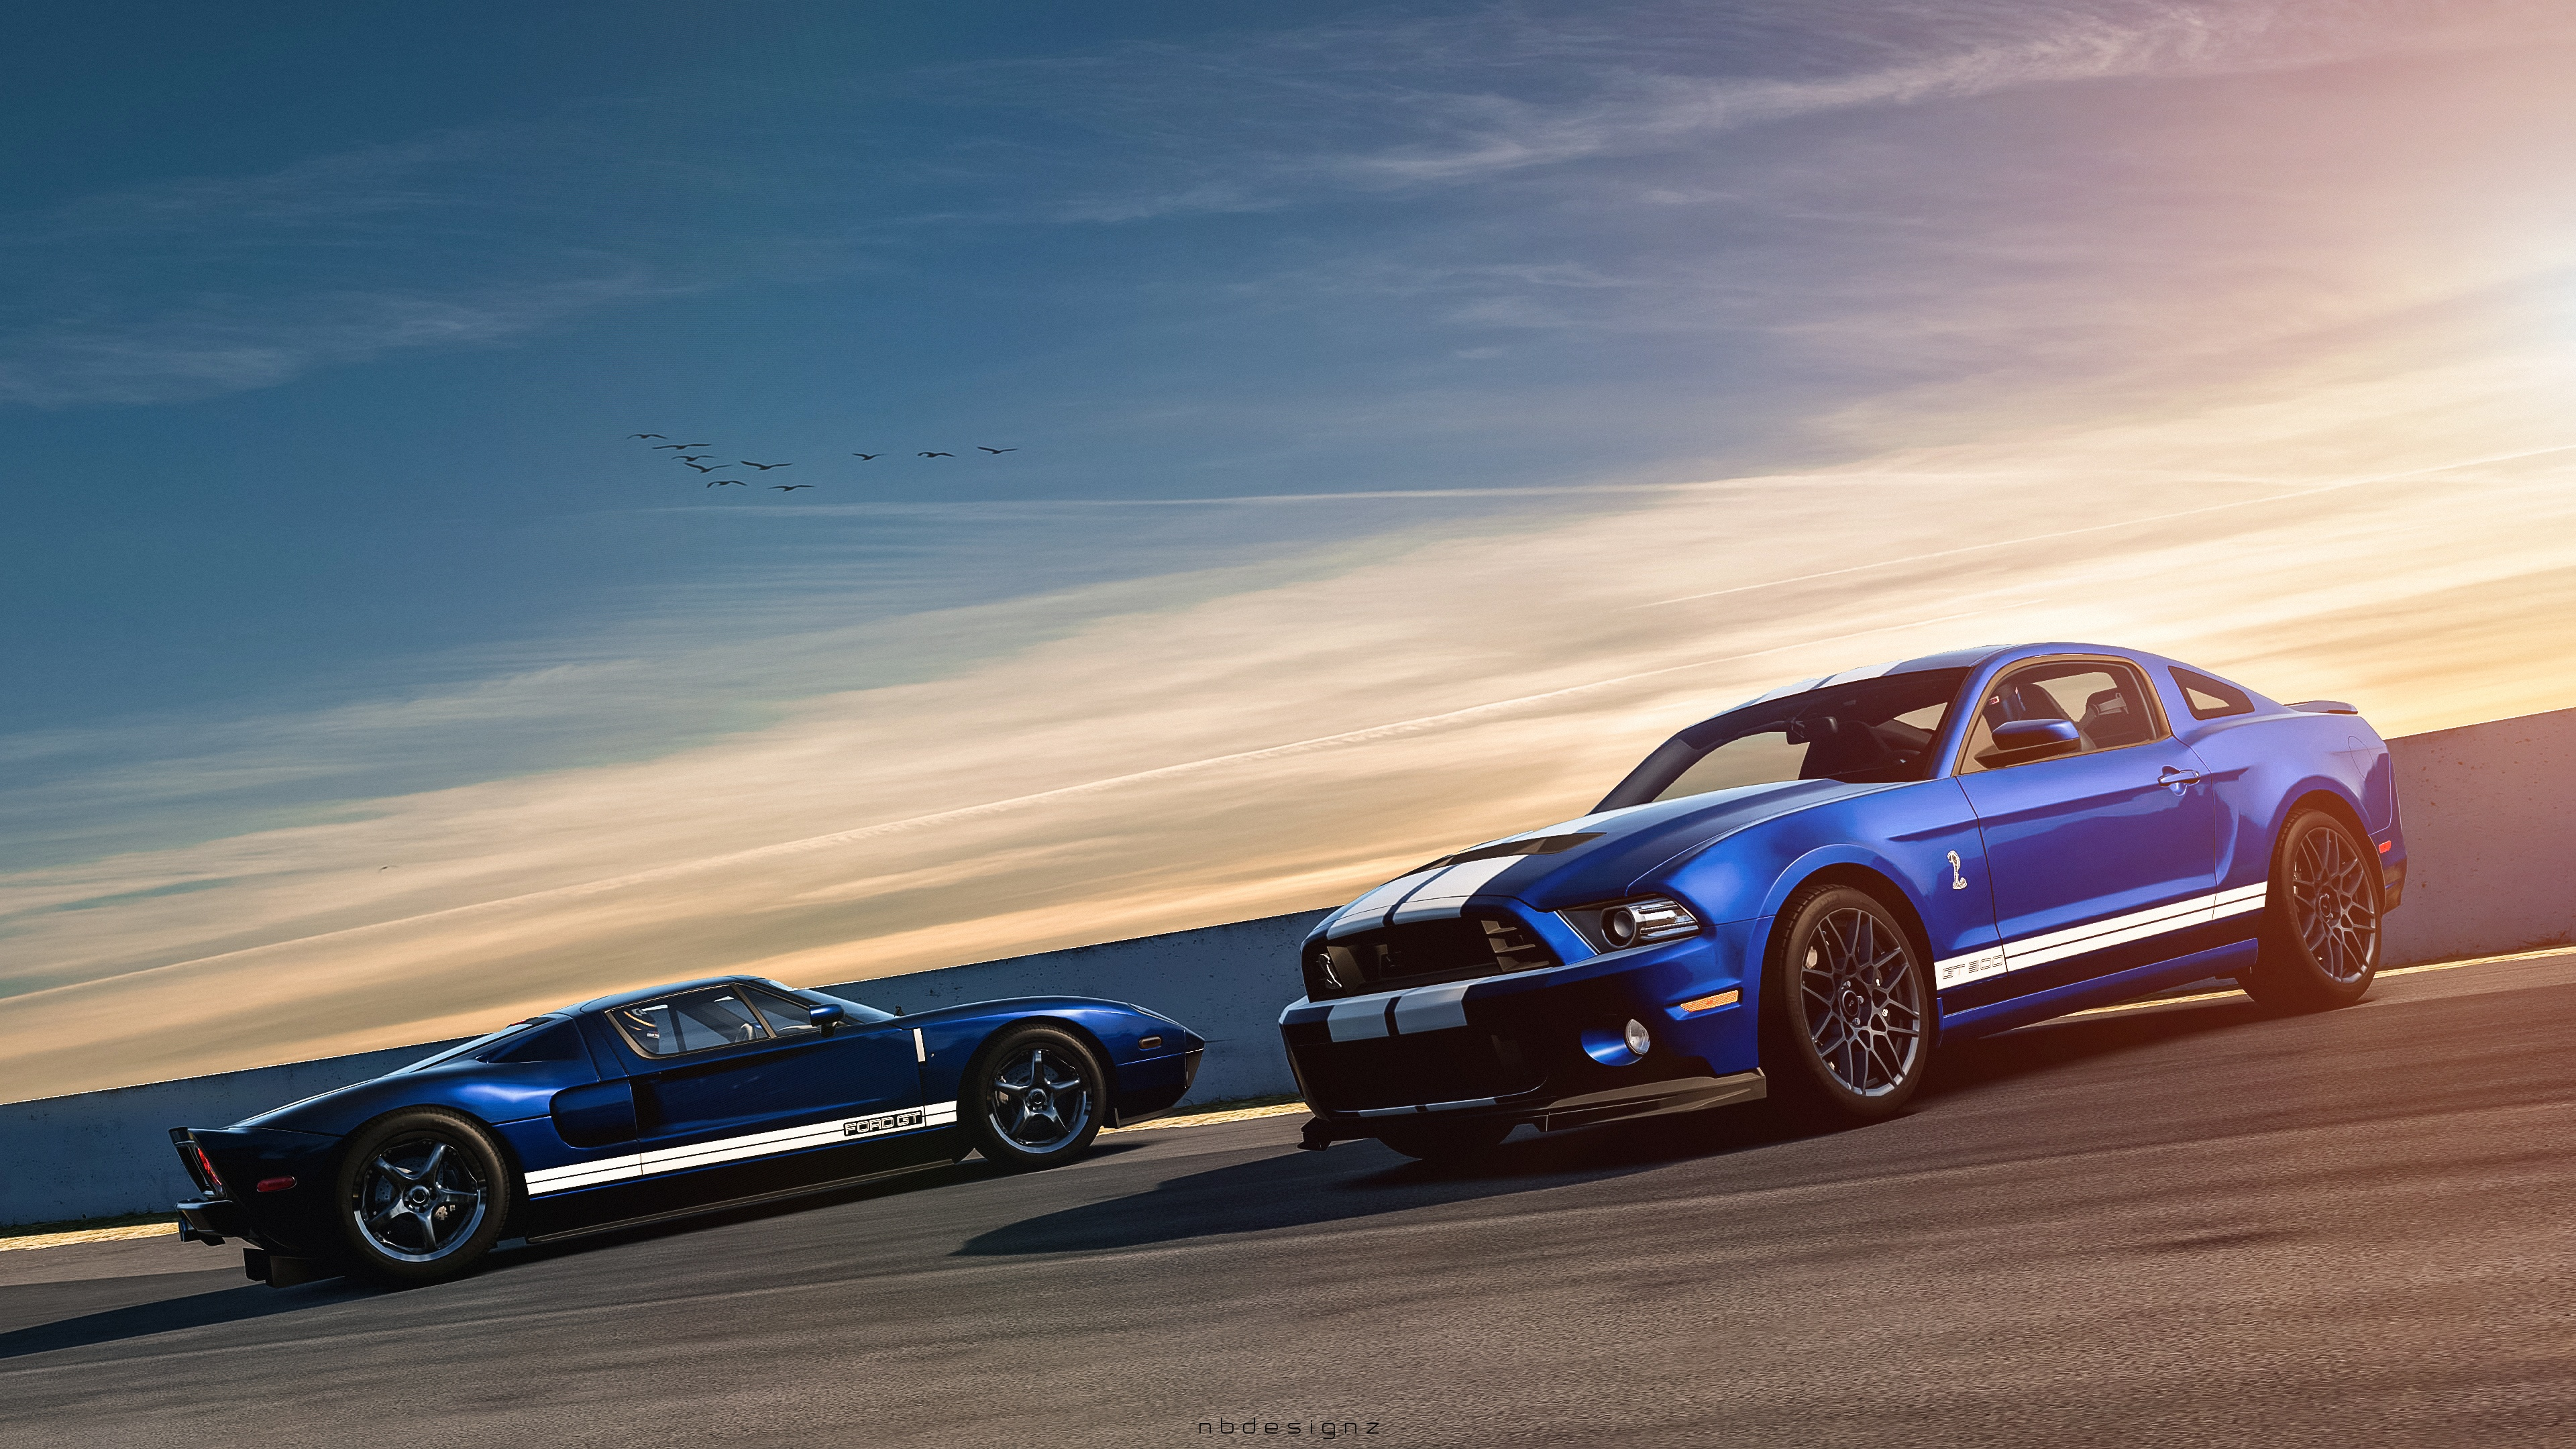 Download ford mustang live wallpaper gallery - Ford mustang wallpaper download ...